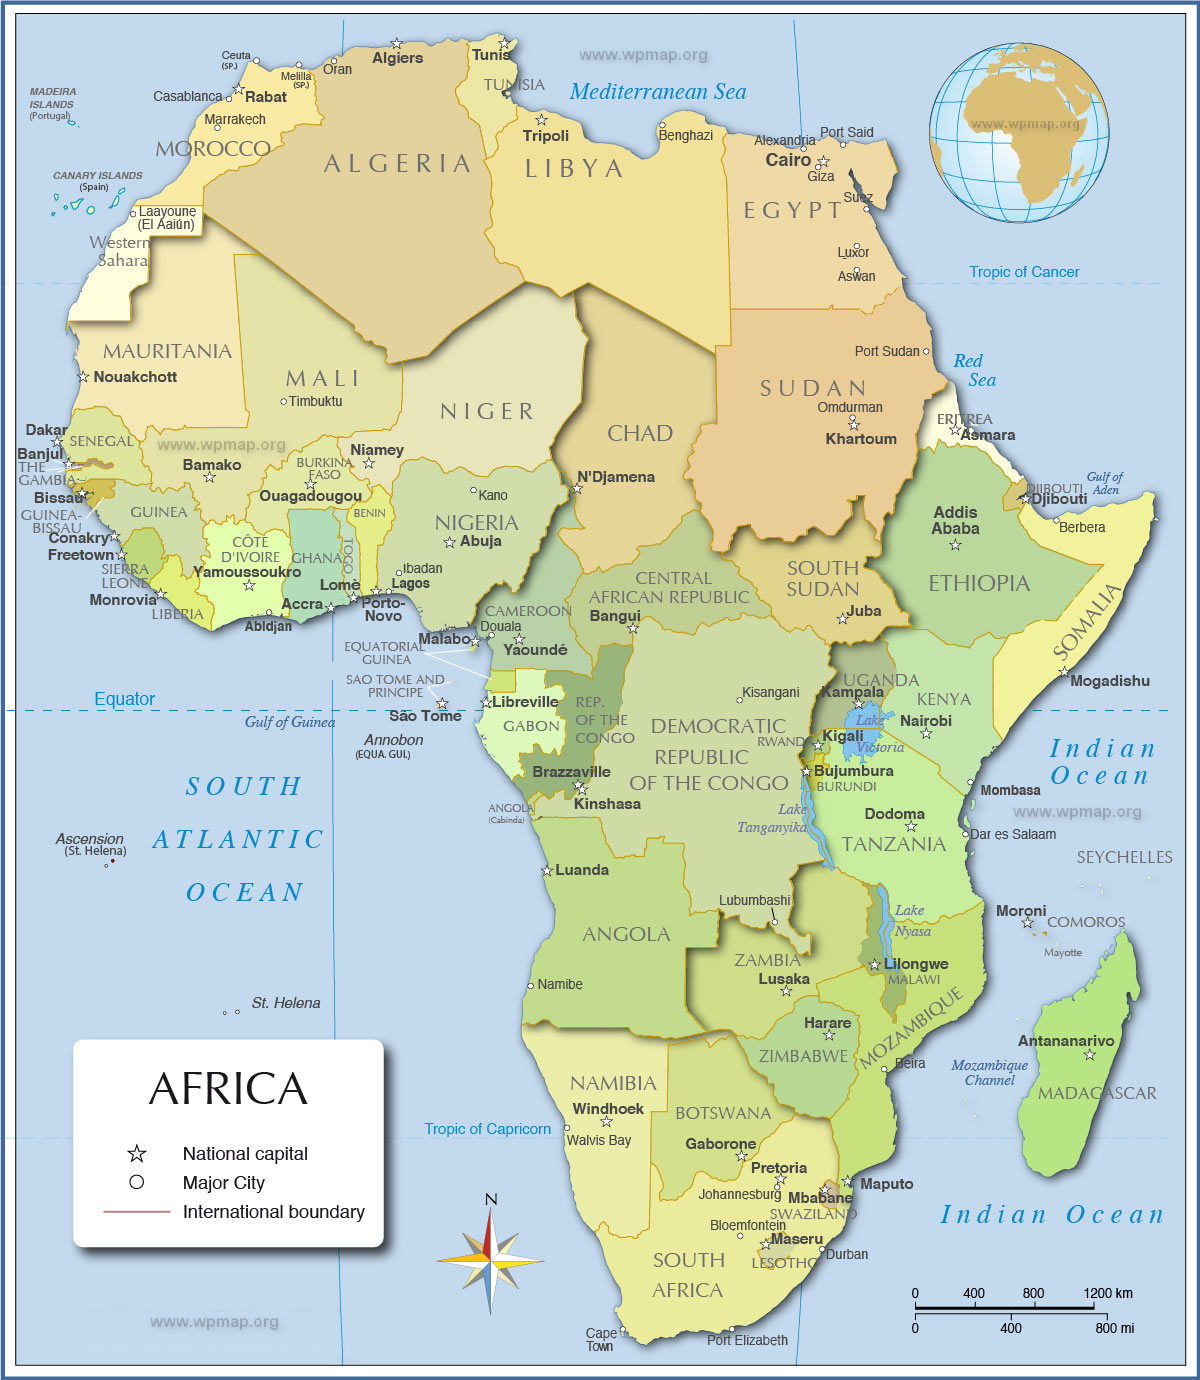 west asia map with Africa Political Map on Omanen also Africa Political Map furthermore Indexe likewise Via 57 West Courtscraper B120916 2 furthermore Work Impact.